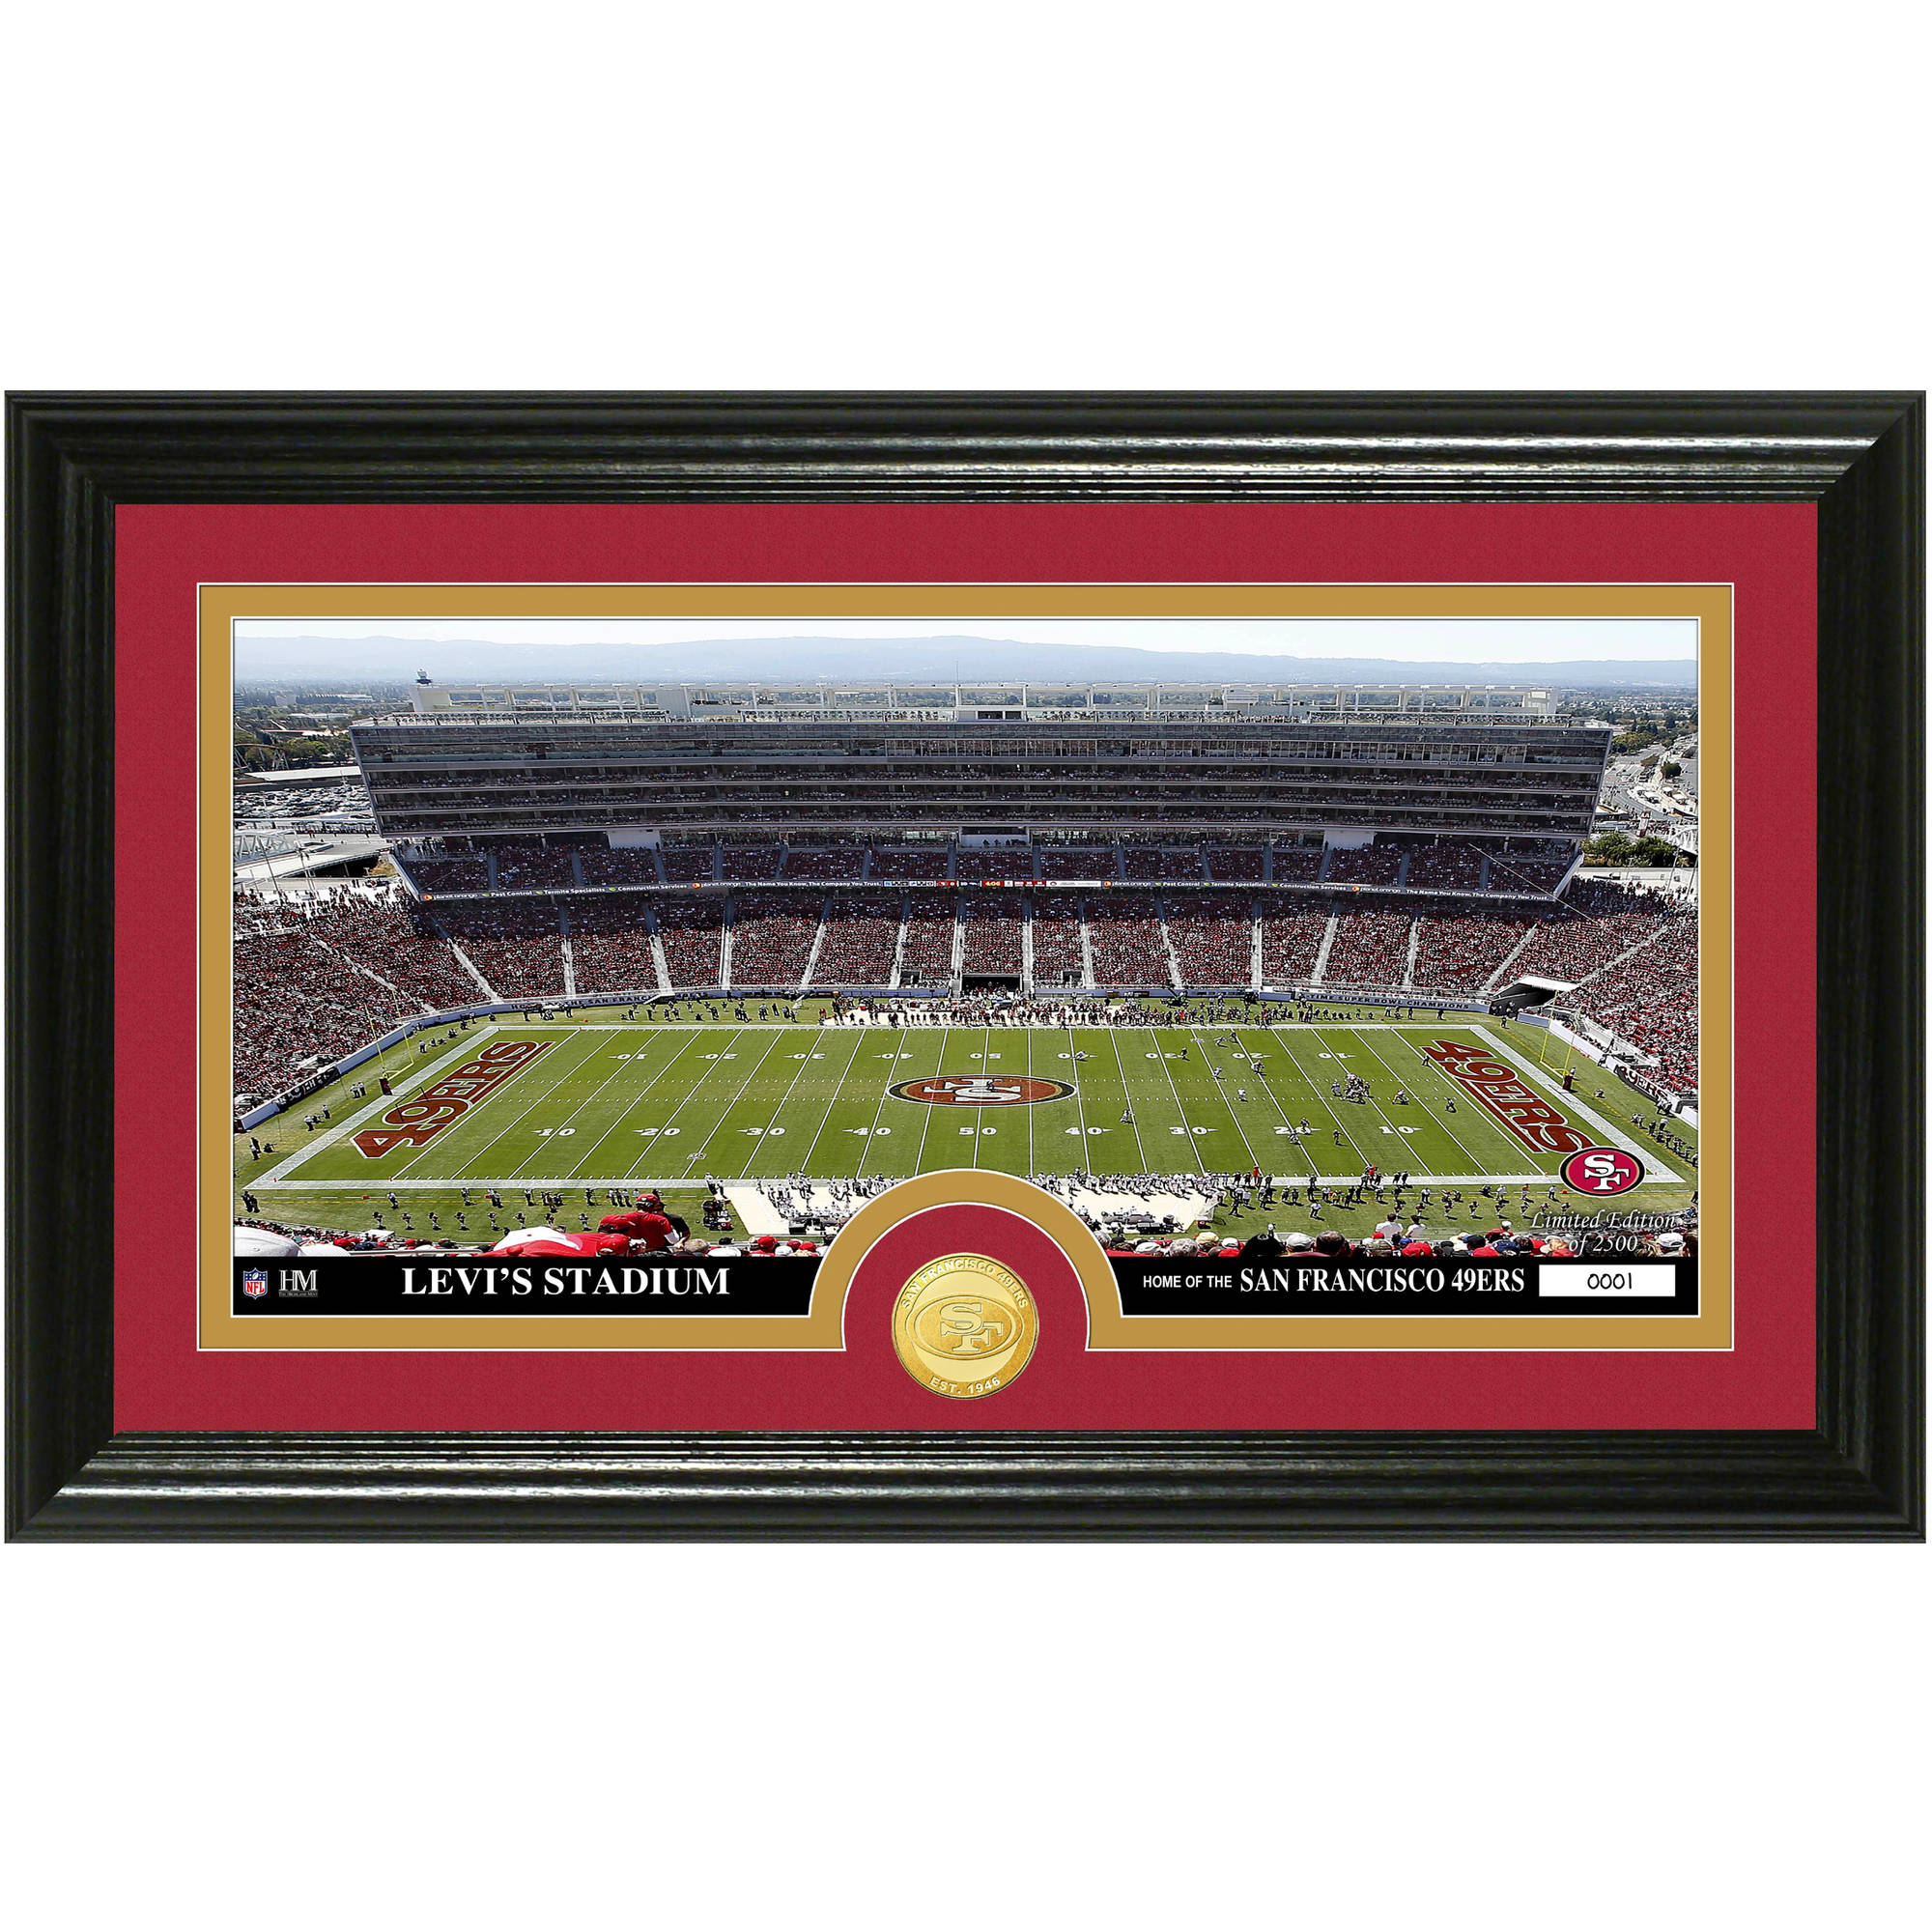 The Highland Mint NFL Stadium Bronze Coin Panoramic Photo Mint, San Francisco 49ers